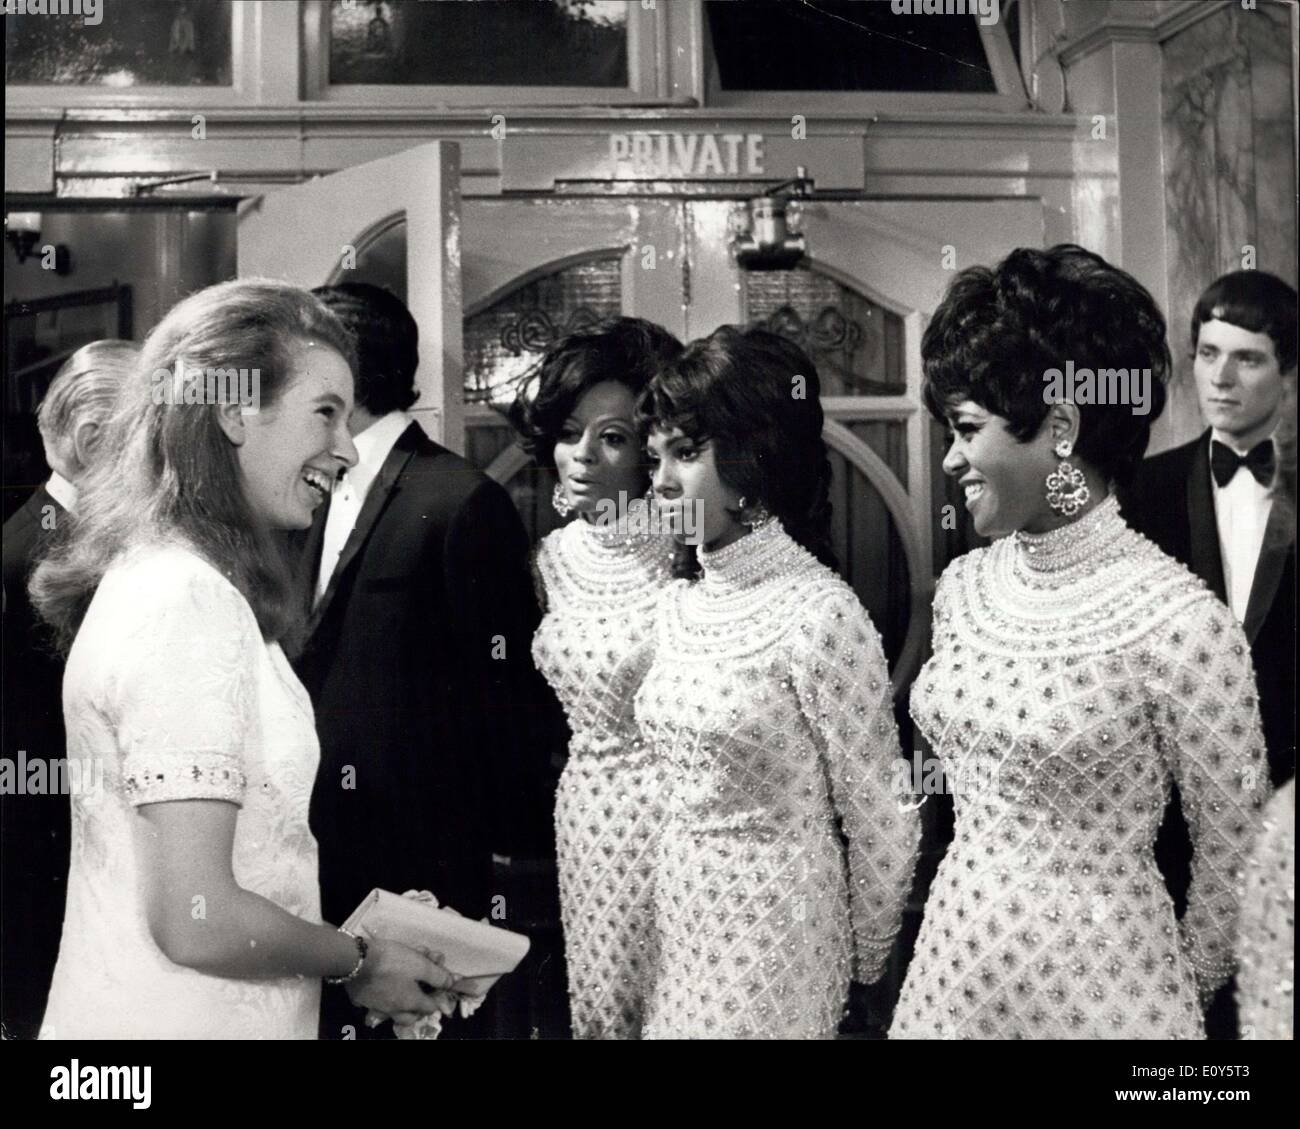 Nov. 18, 1968 - Royals attend the Royal variety performance at the London Palladium: Queen Elizabeth the Queen Mother, was accompanied by Princess Anne, Prince Charles, Princess Margaret and her husband, Lord Snowdown, when they attended the Royal Variety Performance at the London Palladium this evening (Nov. 18) in aid of the Variety Artistes! Benevolent Fund. Photo shows Princess Anne stops to chat to the Supreme pop group when she met the stars after the show. - Stock Image